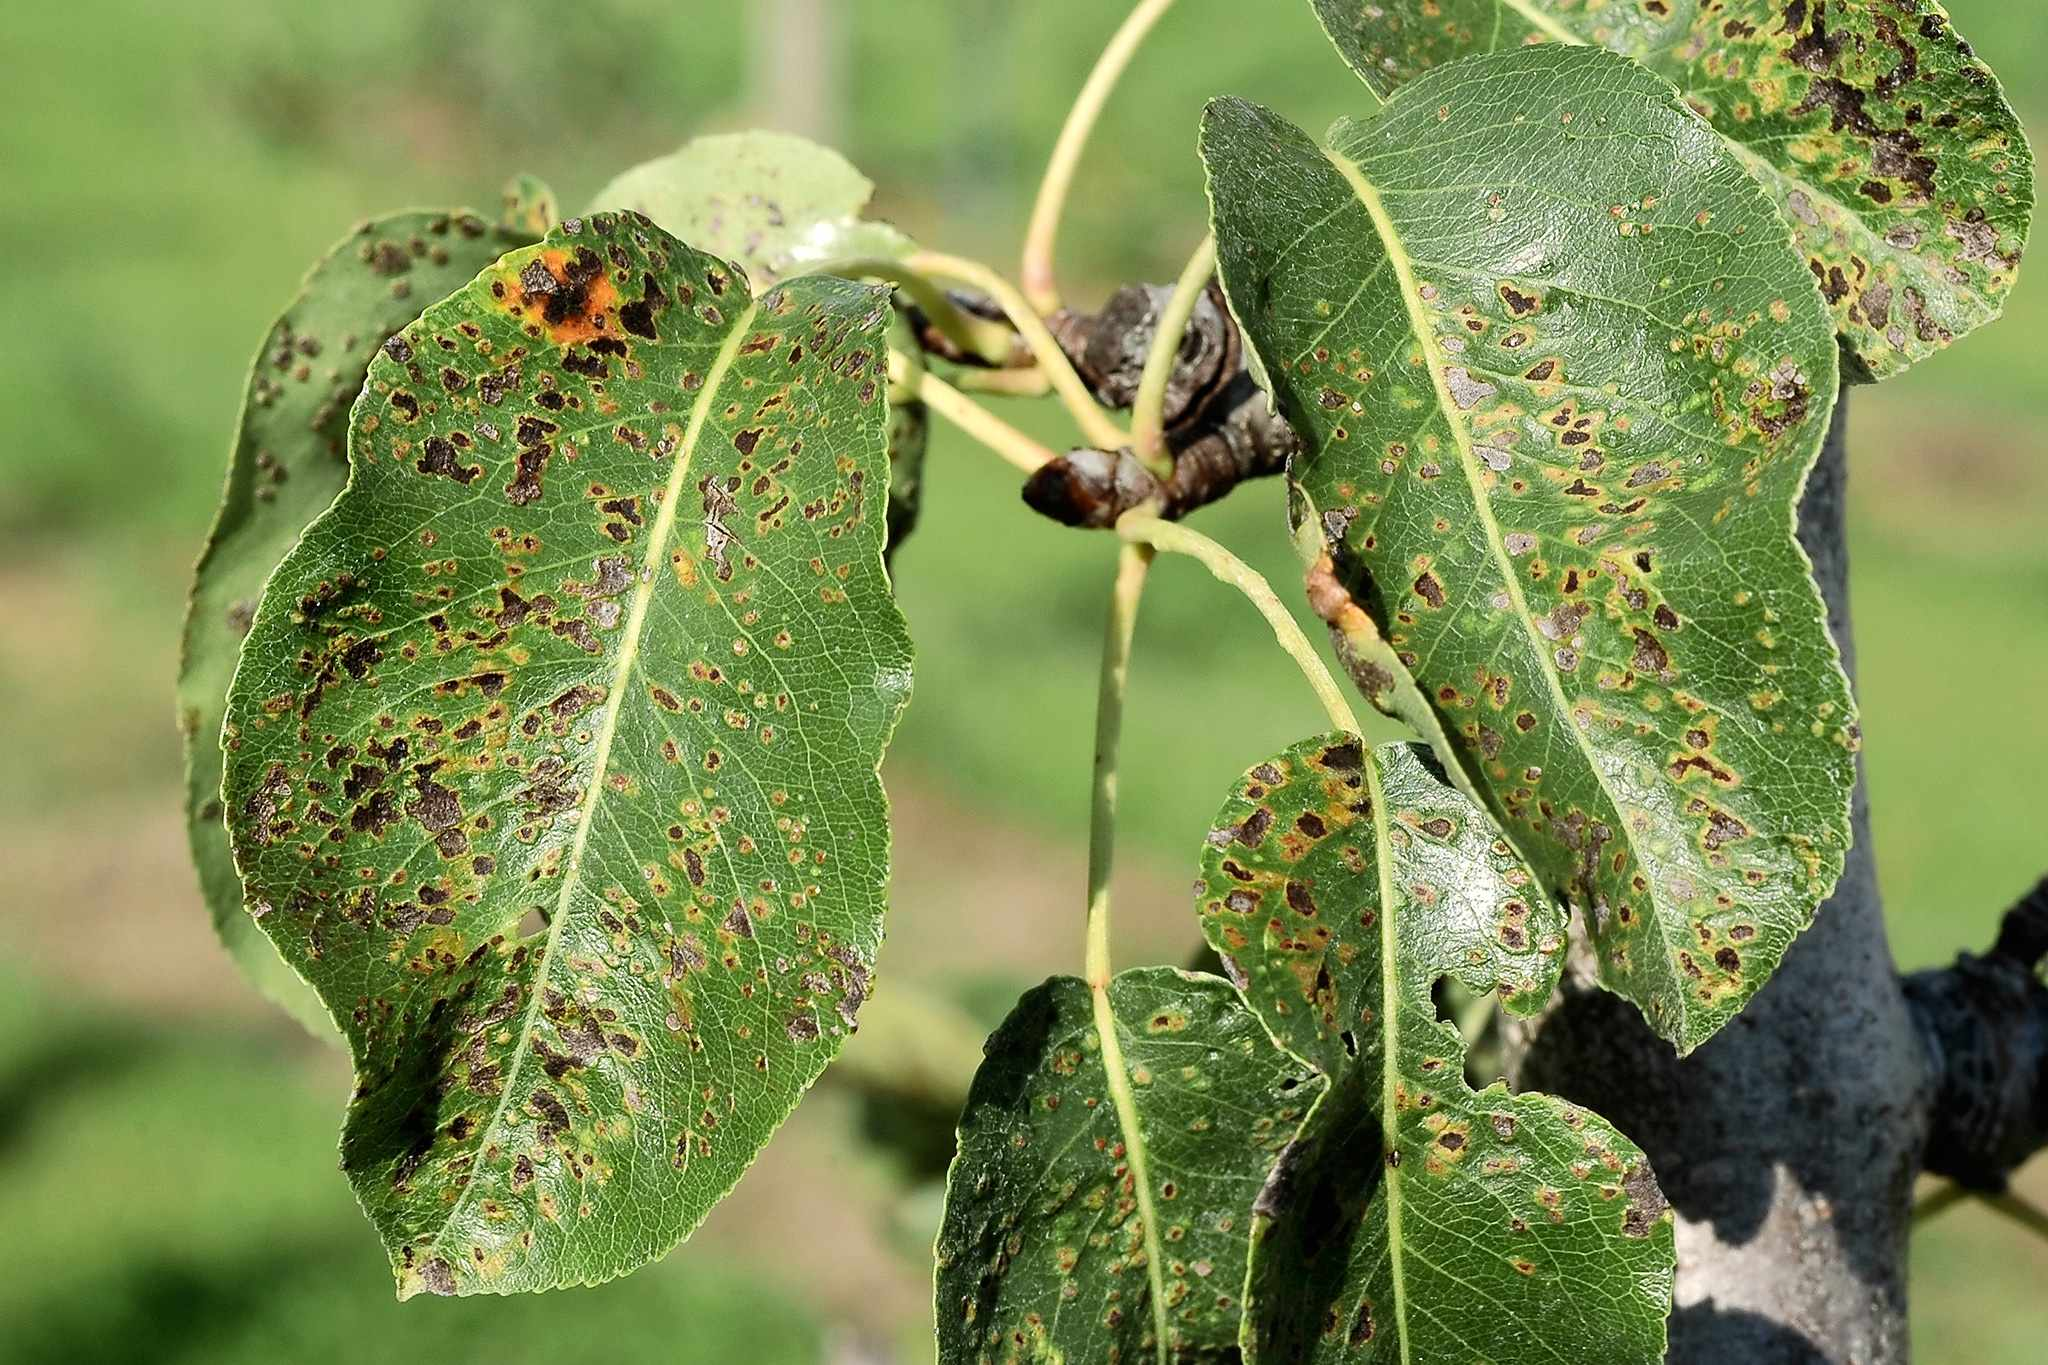 Pear tree leaves marked with blistering and discolouration caused by mites